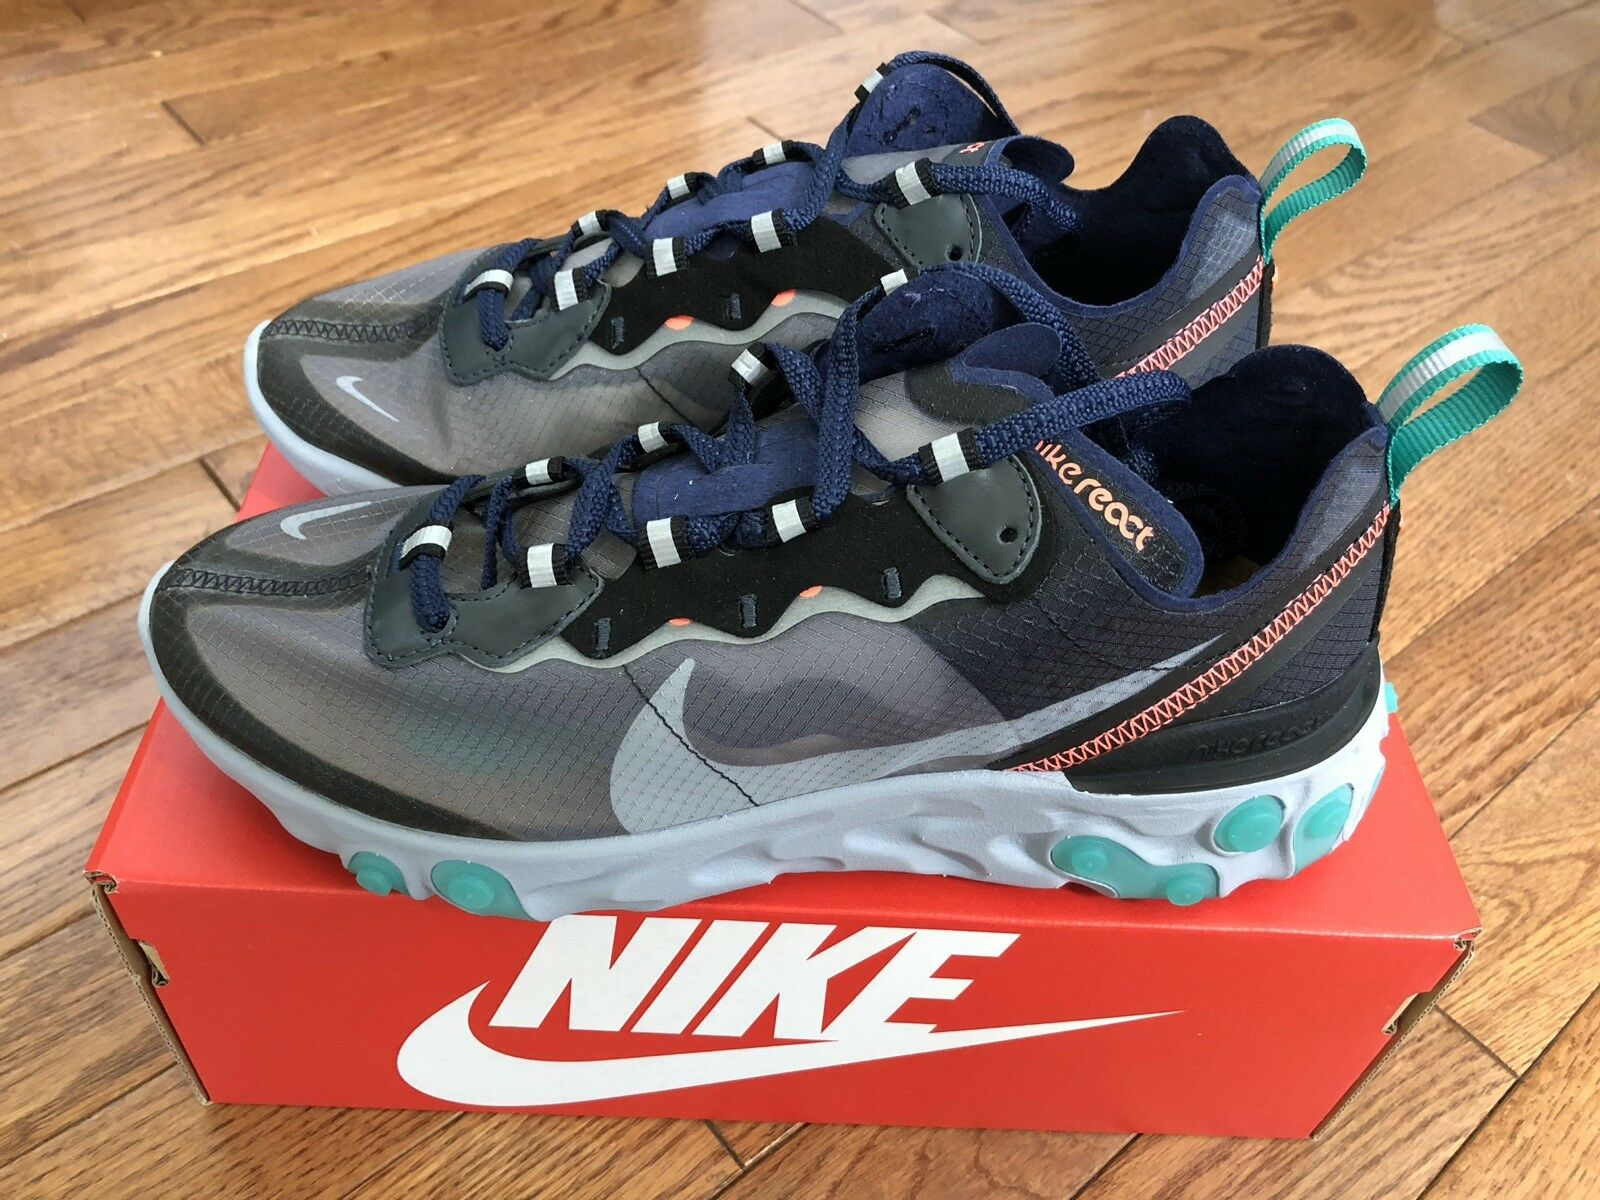 Nike React Element 87 Black Neptune Green Size 7 Black Grey AQ1090-005